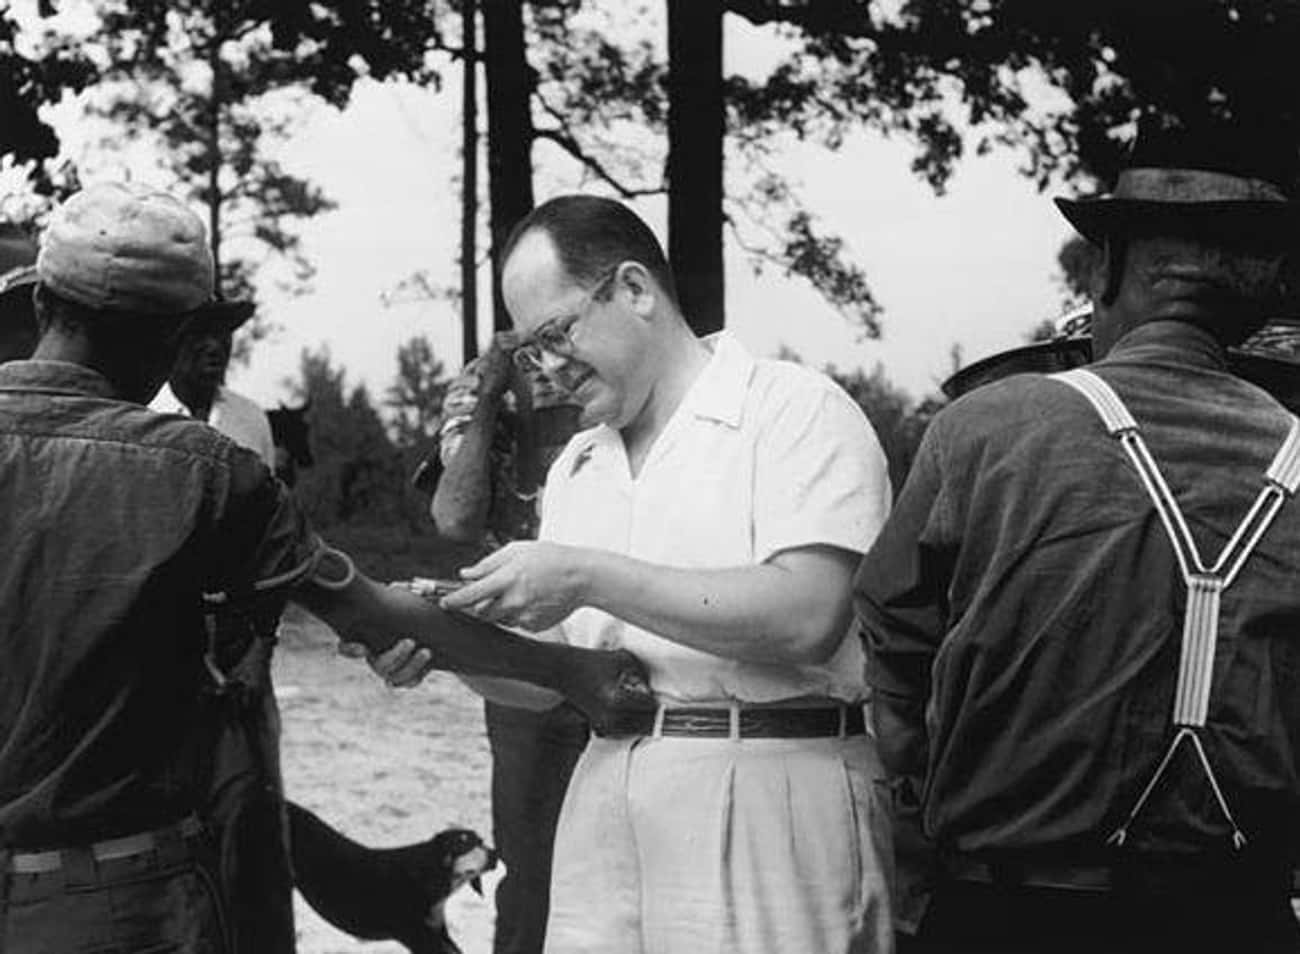 It Began When Syphilis Started is listed (or ranked) 1 on the list The True Story Of The Government's Horrific Tuskegee Syphilis Experiments On US Citizens